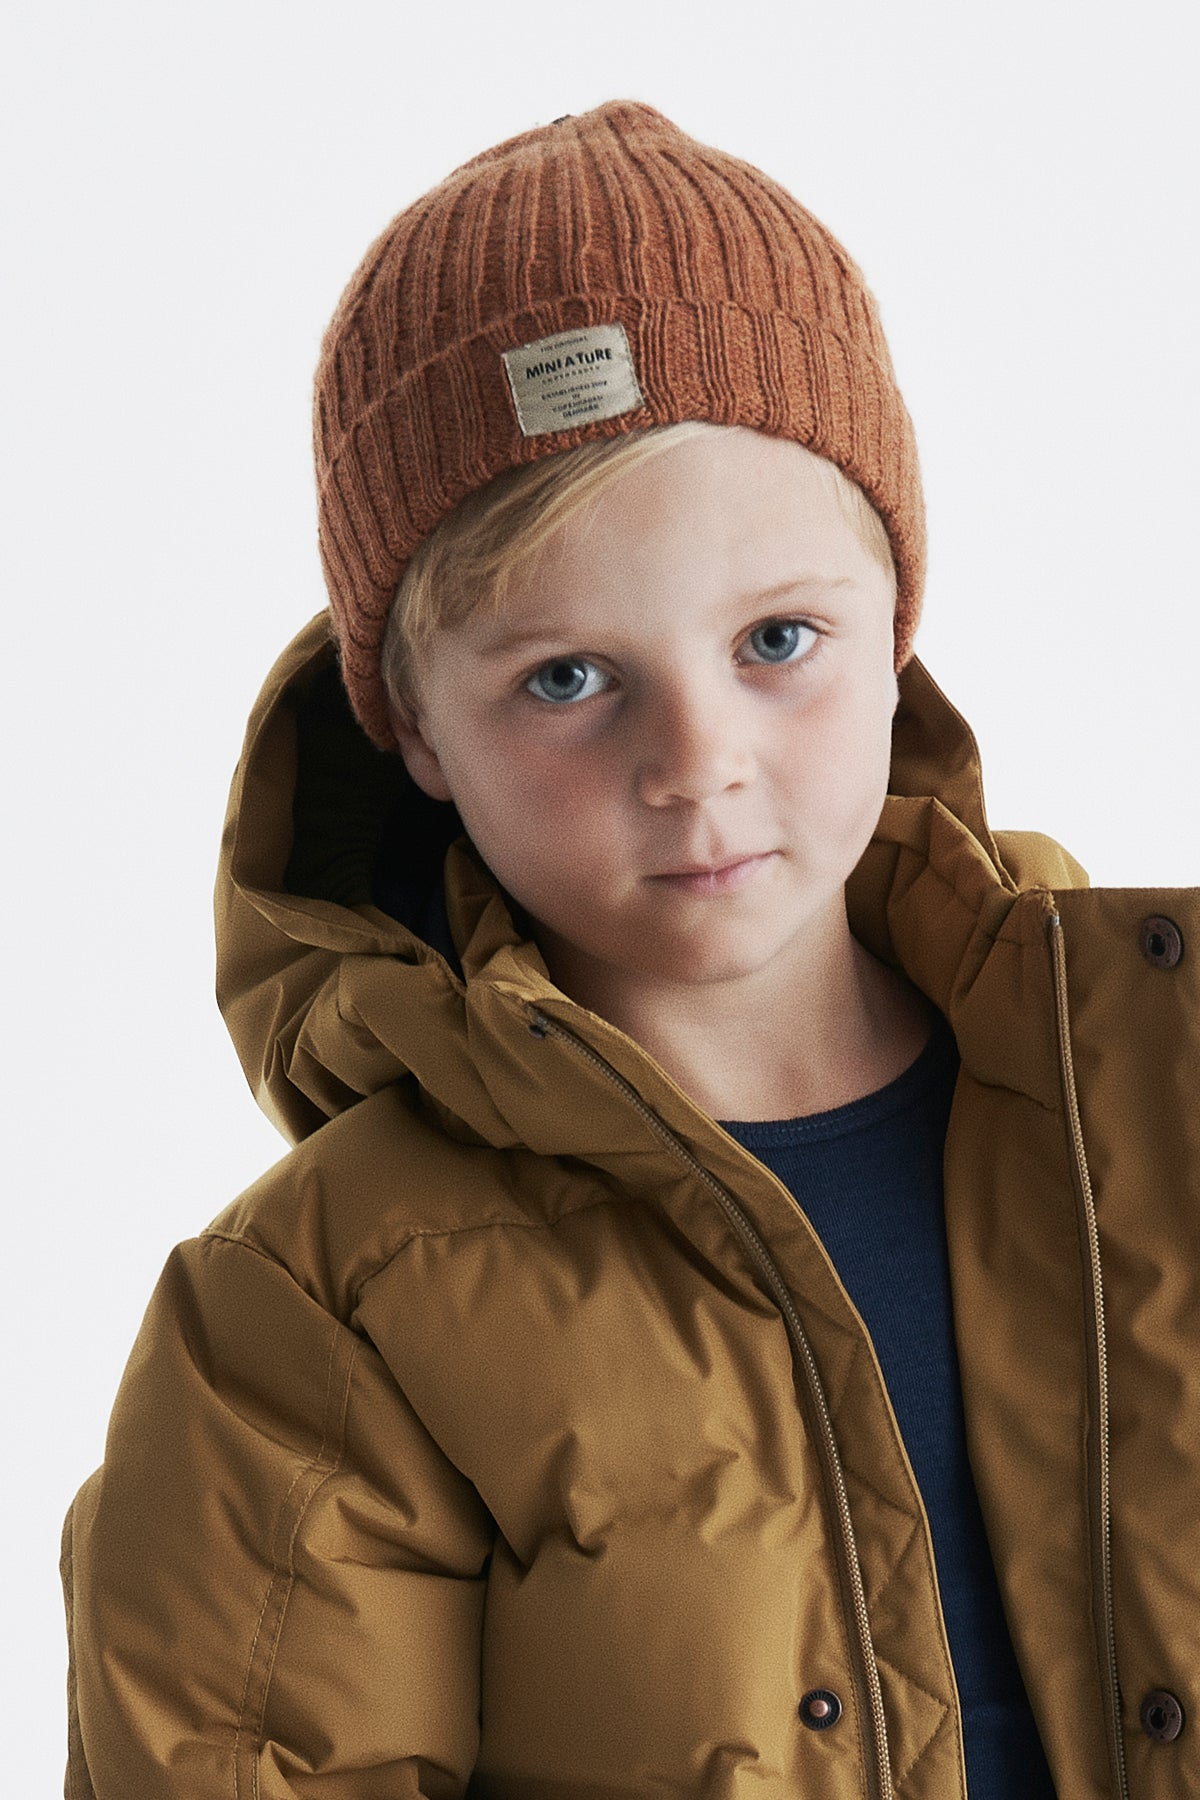 Mini A Ture Merino Knit Kids Hat - Autumn